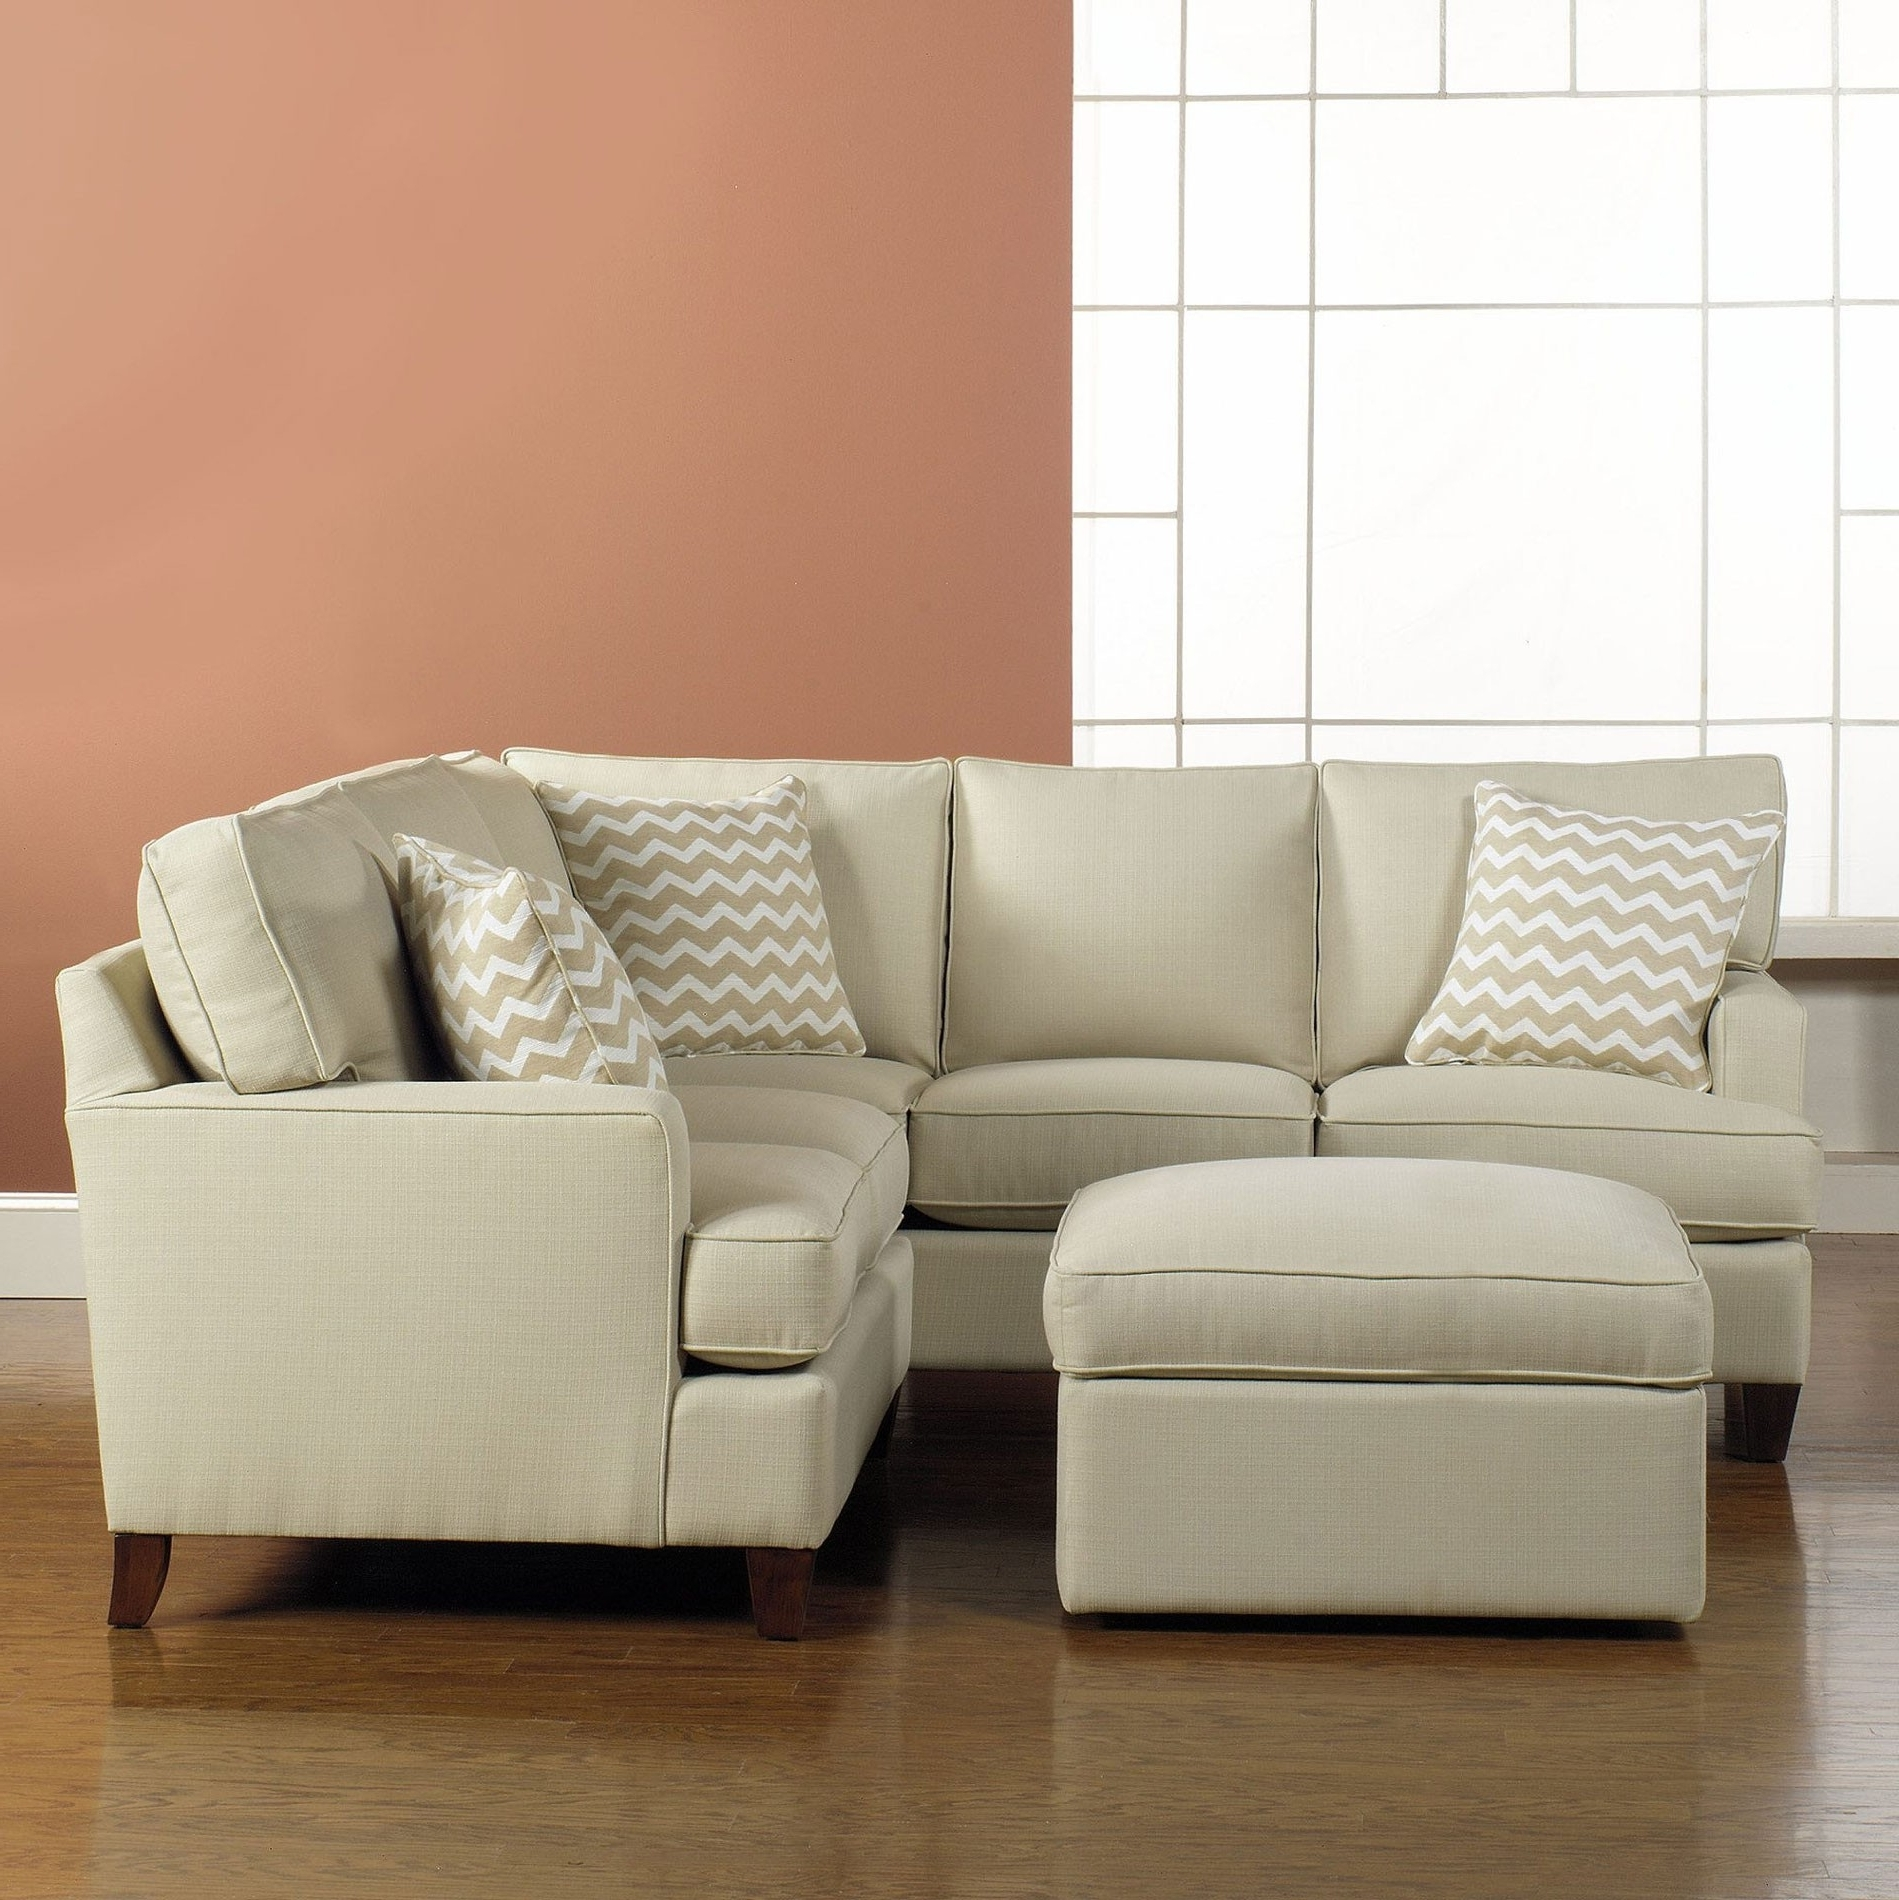 Small Scale Sofas Throughout Current Small Loveseats For Apartments Modern Furniture Small Spaces Small (View 12 of 15)